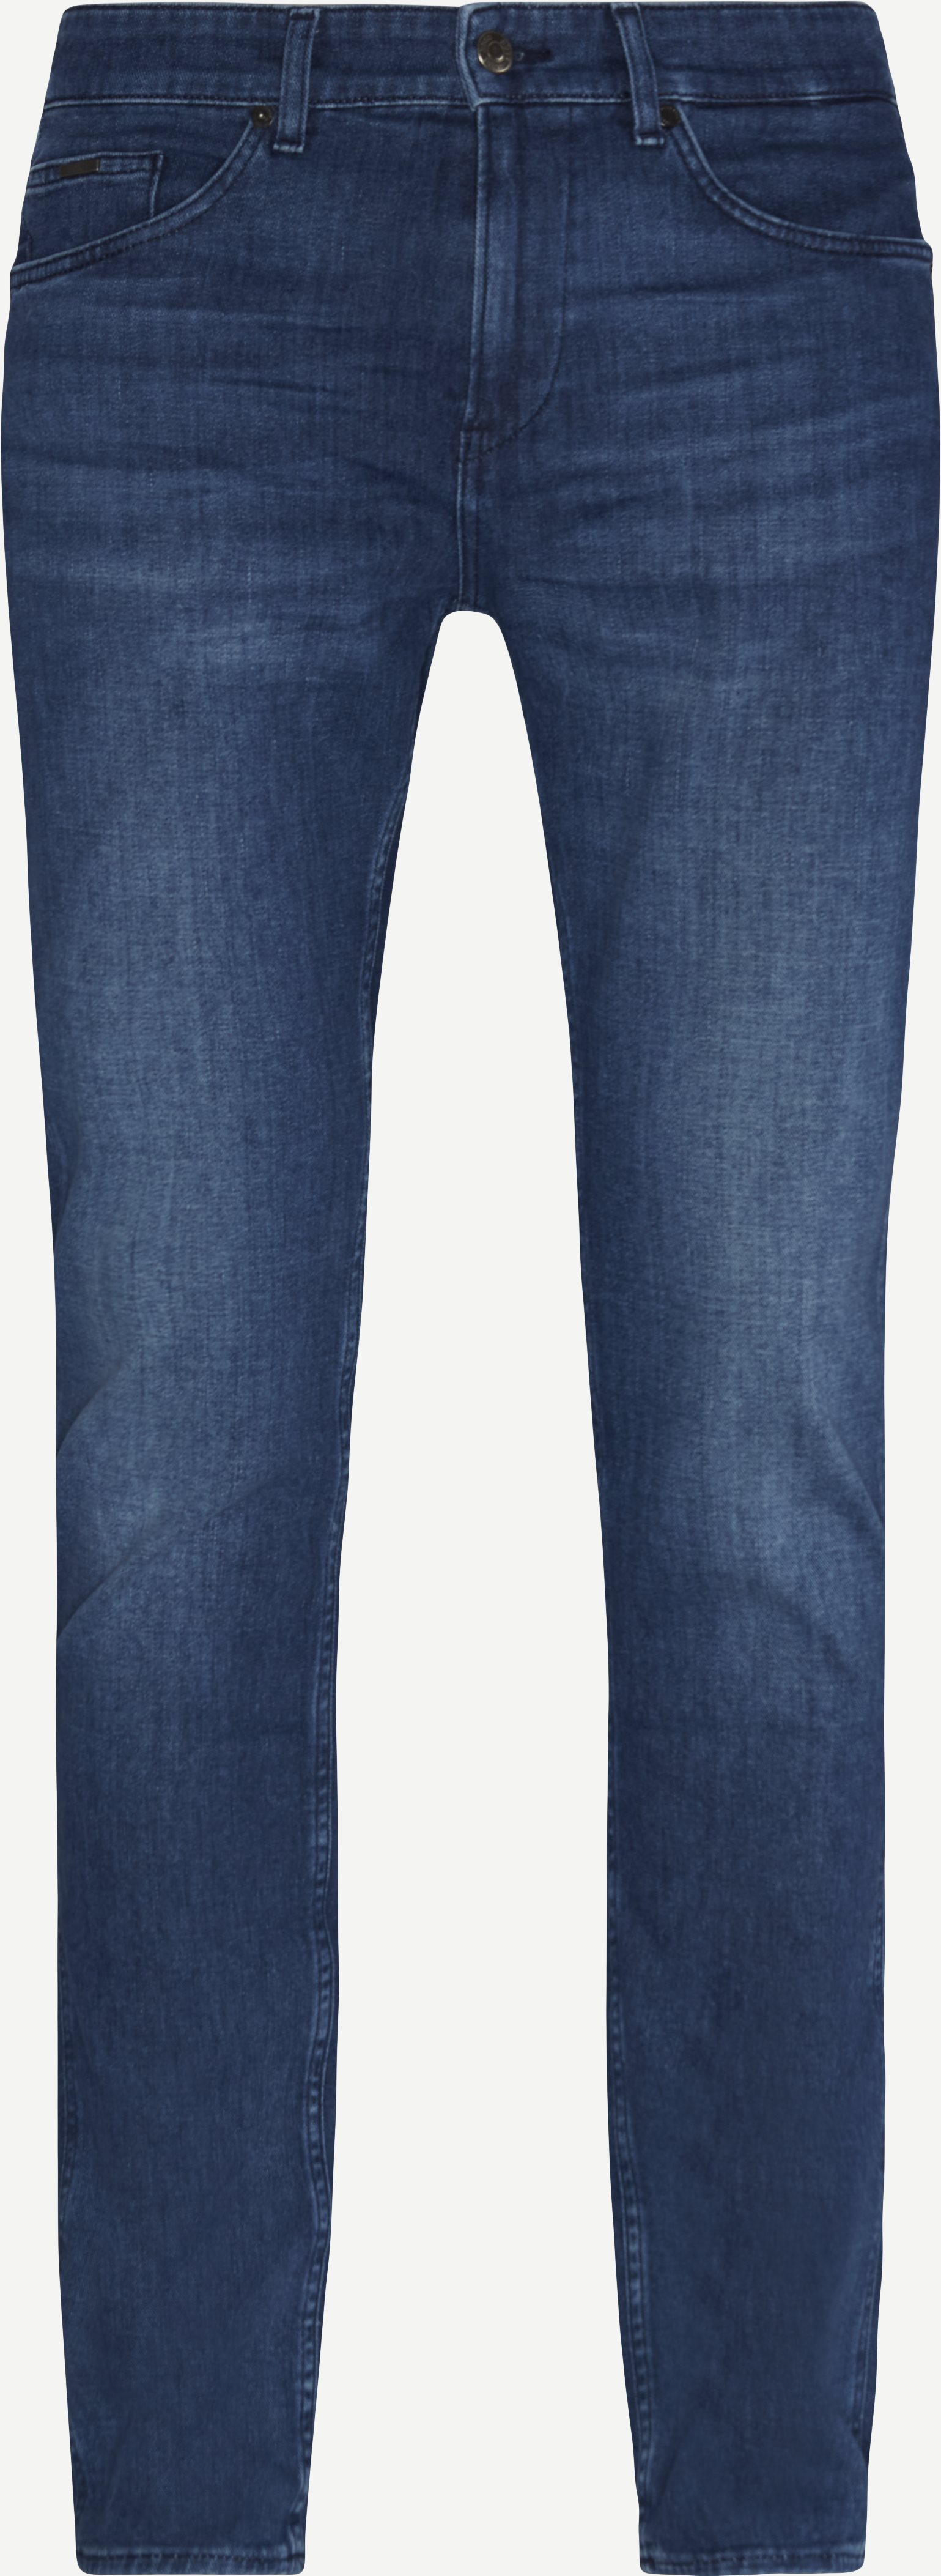 Delaware3 Jeans - Jeans - Slim fit - Denim